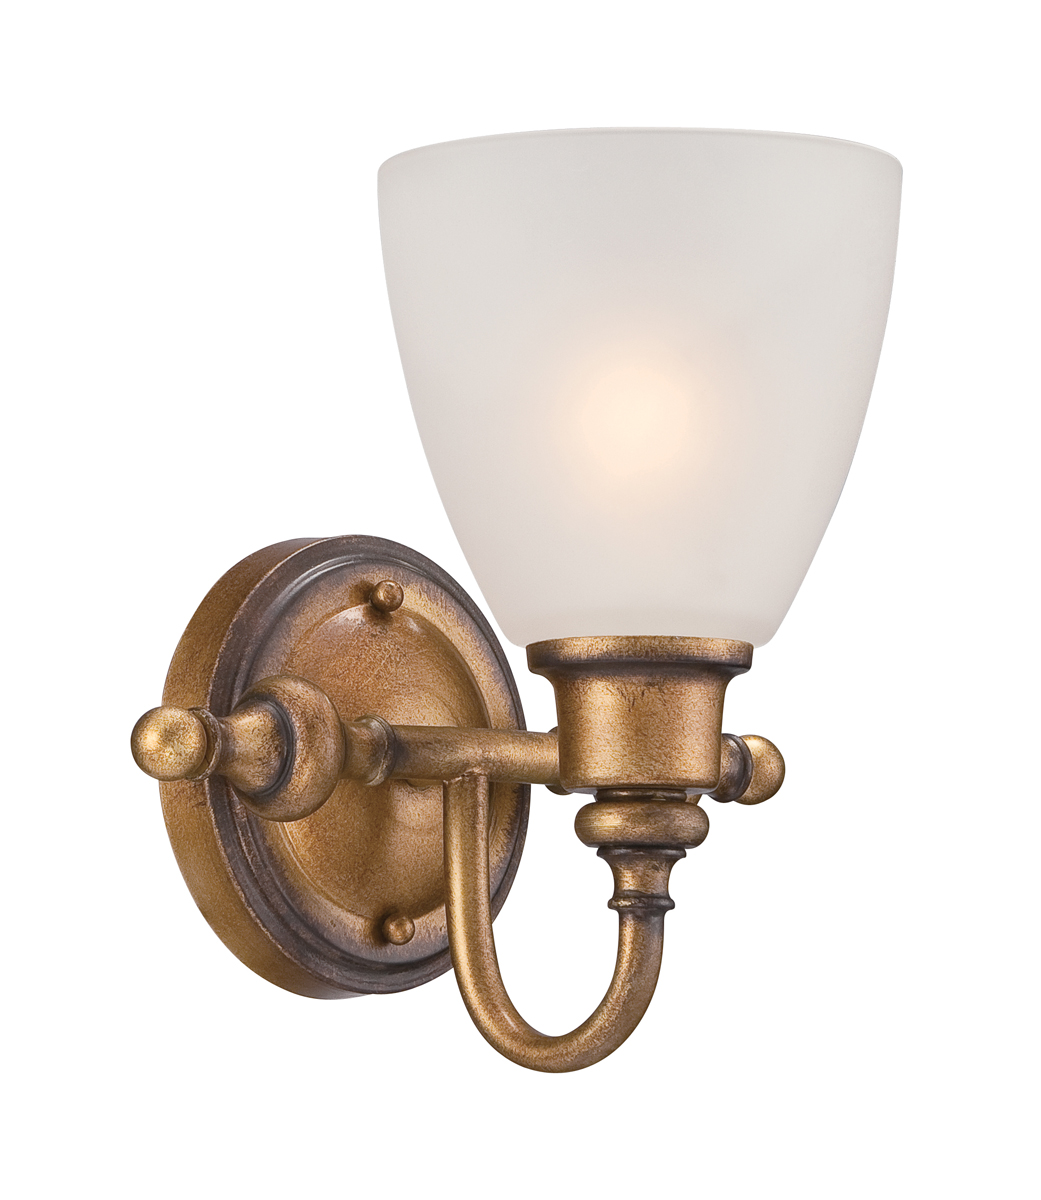 Aged Brass Wall Sconces : Designers Fountain (85601-ABS) Isla Wall Sconce in Aged Brass